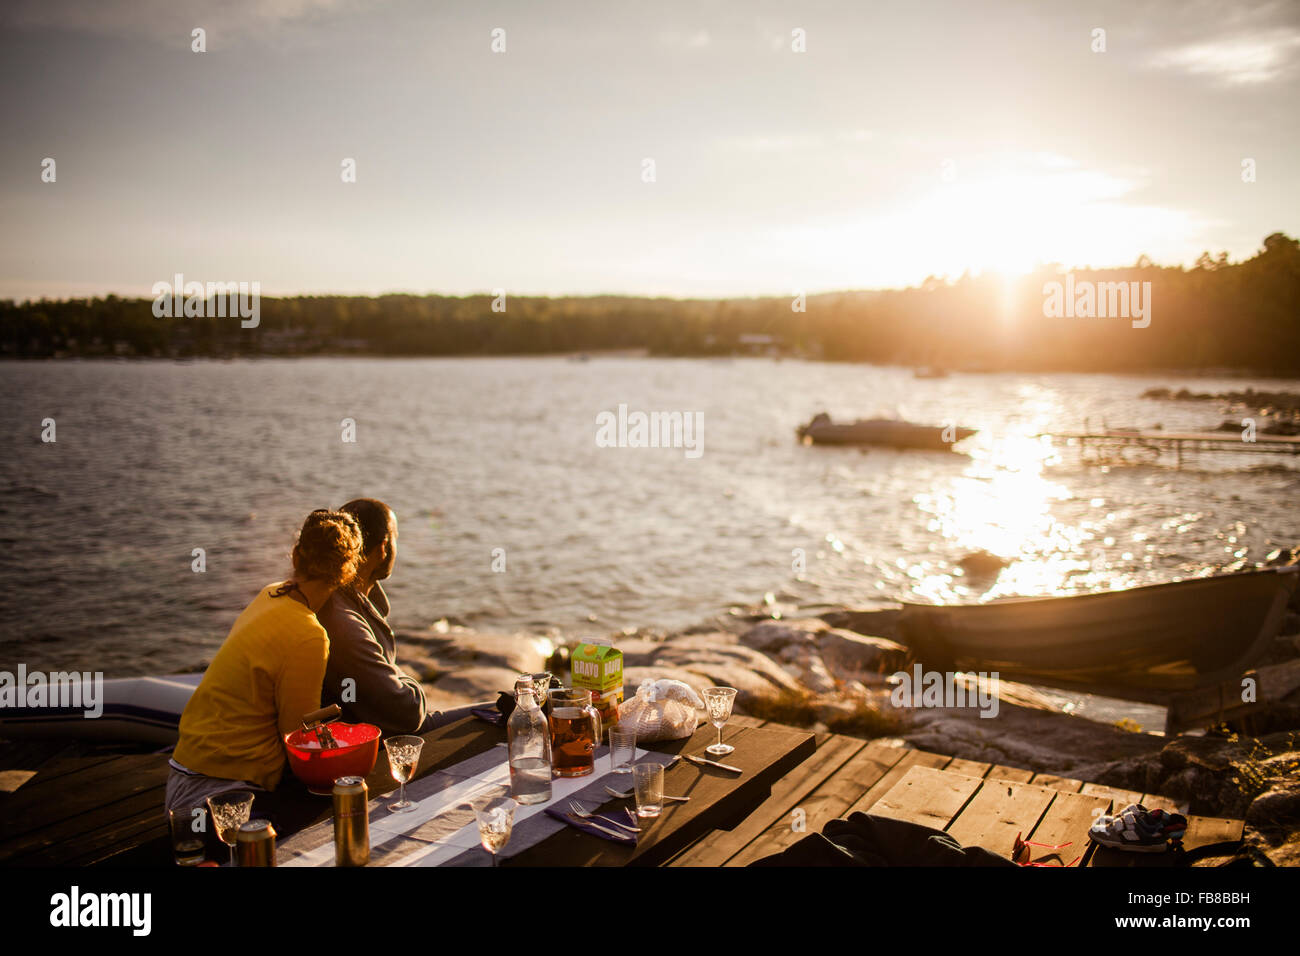 Sweden, Medelpad, Alnon, Couple looking at sunset - Stock Image